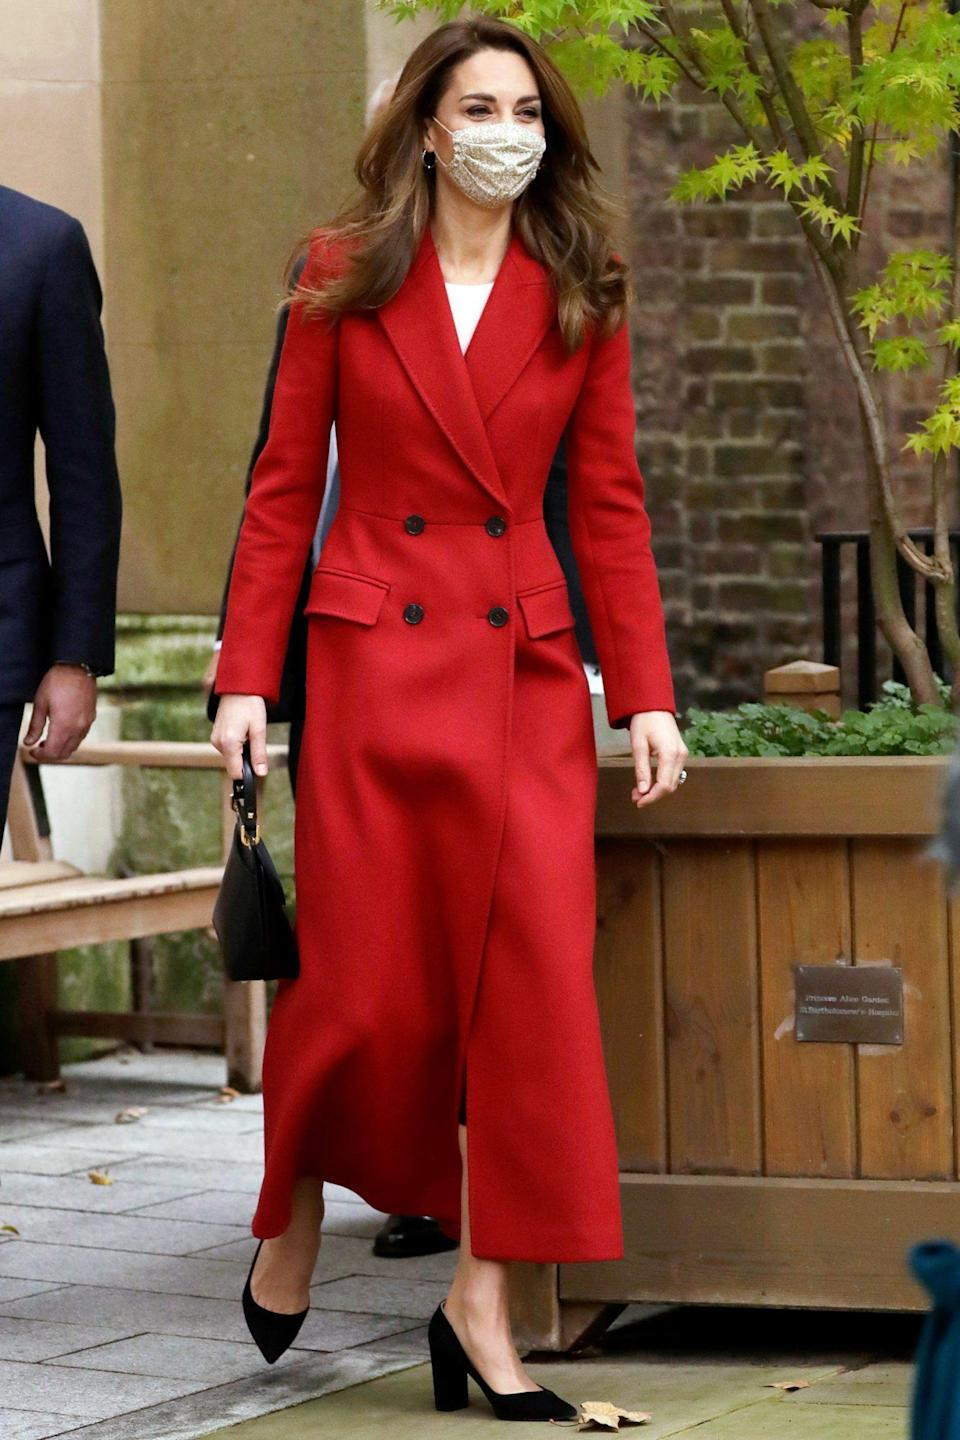 <p>Kate Middleton, Duchess of Cambridge, arrives at St. Bartholomew's Hospital on Monday in London for the launch of Hold Still, a nationwide community photography project. </p>